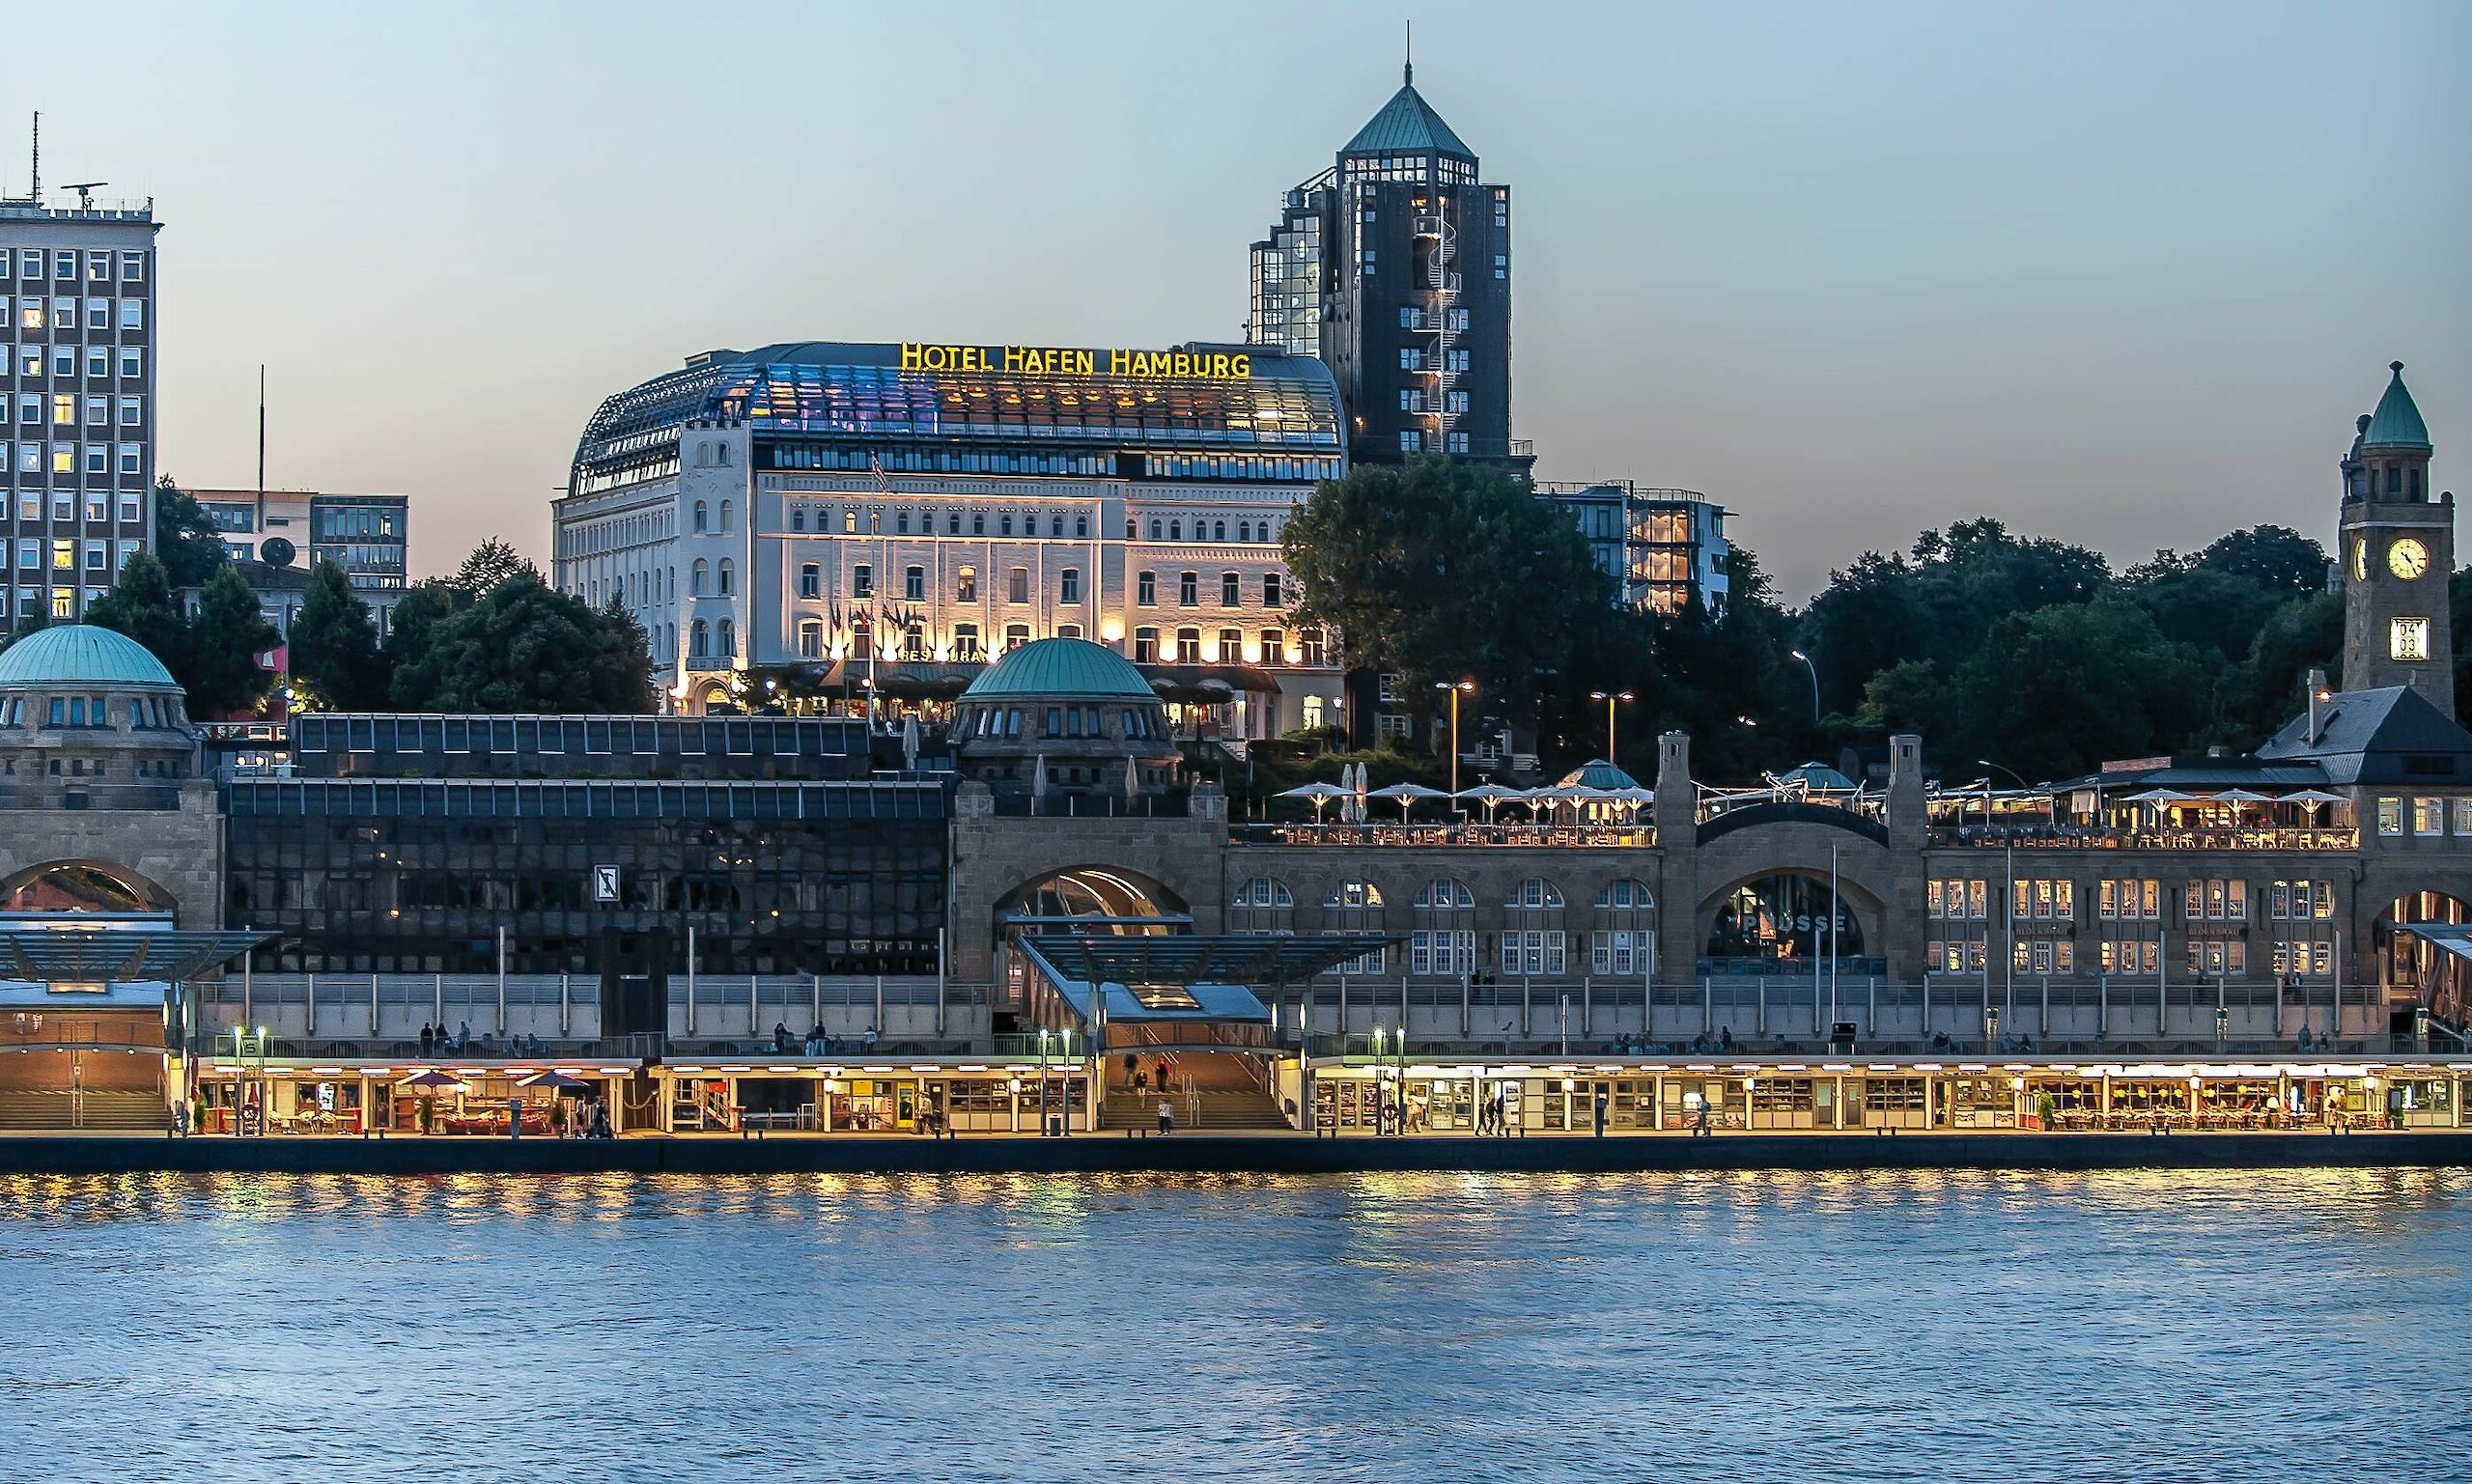 The exterior of the Hotel Hafen Hamburg in the glow of the evening lights